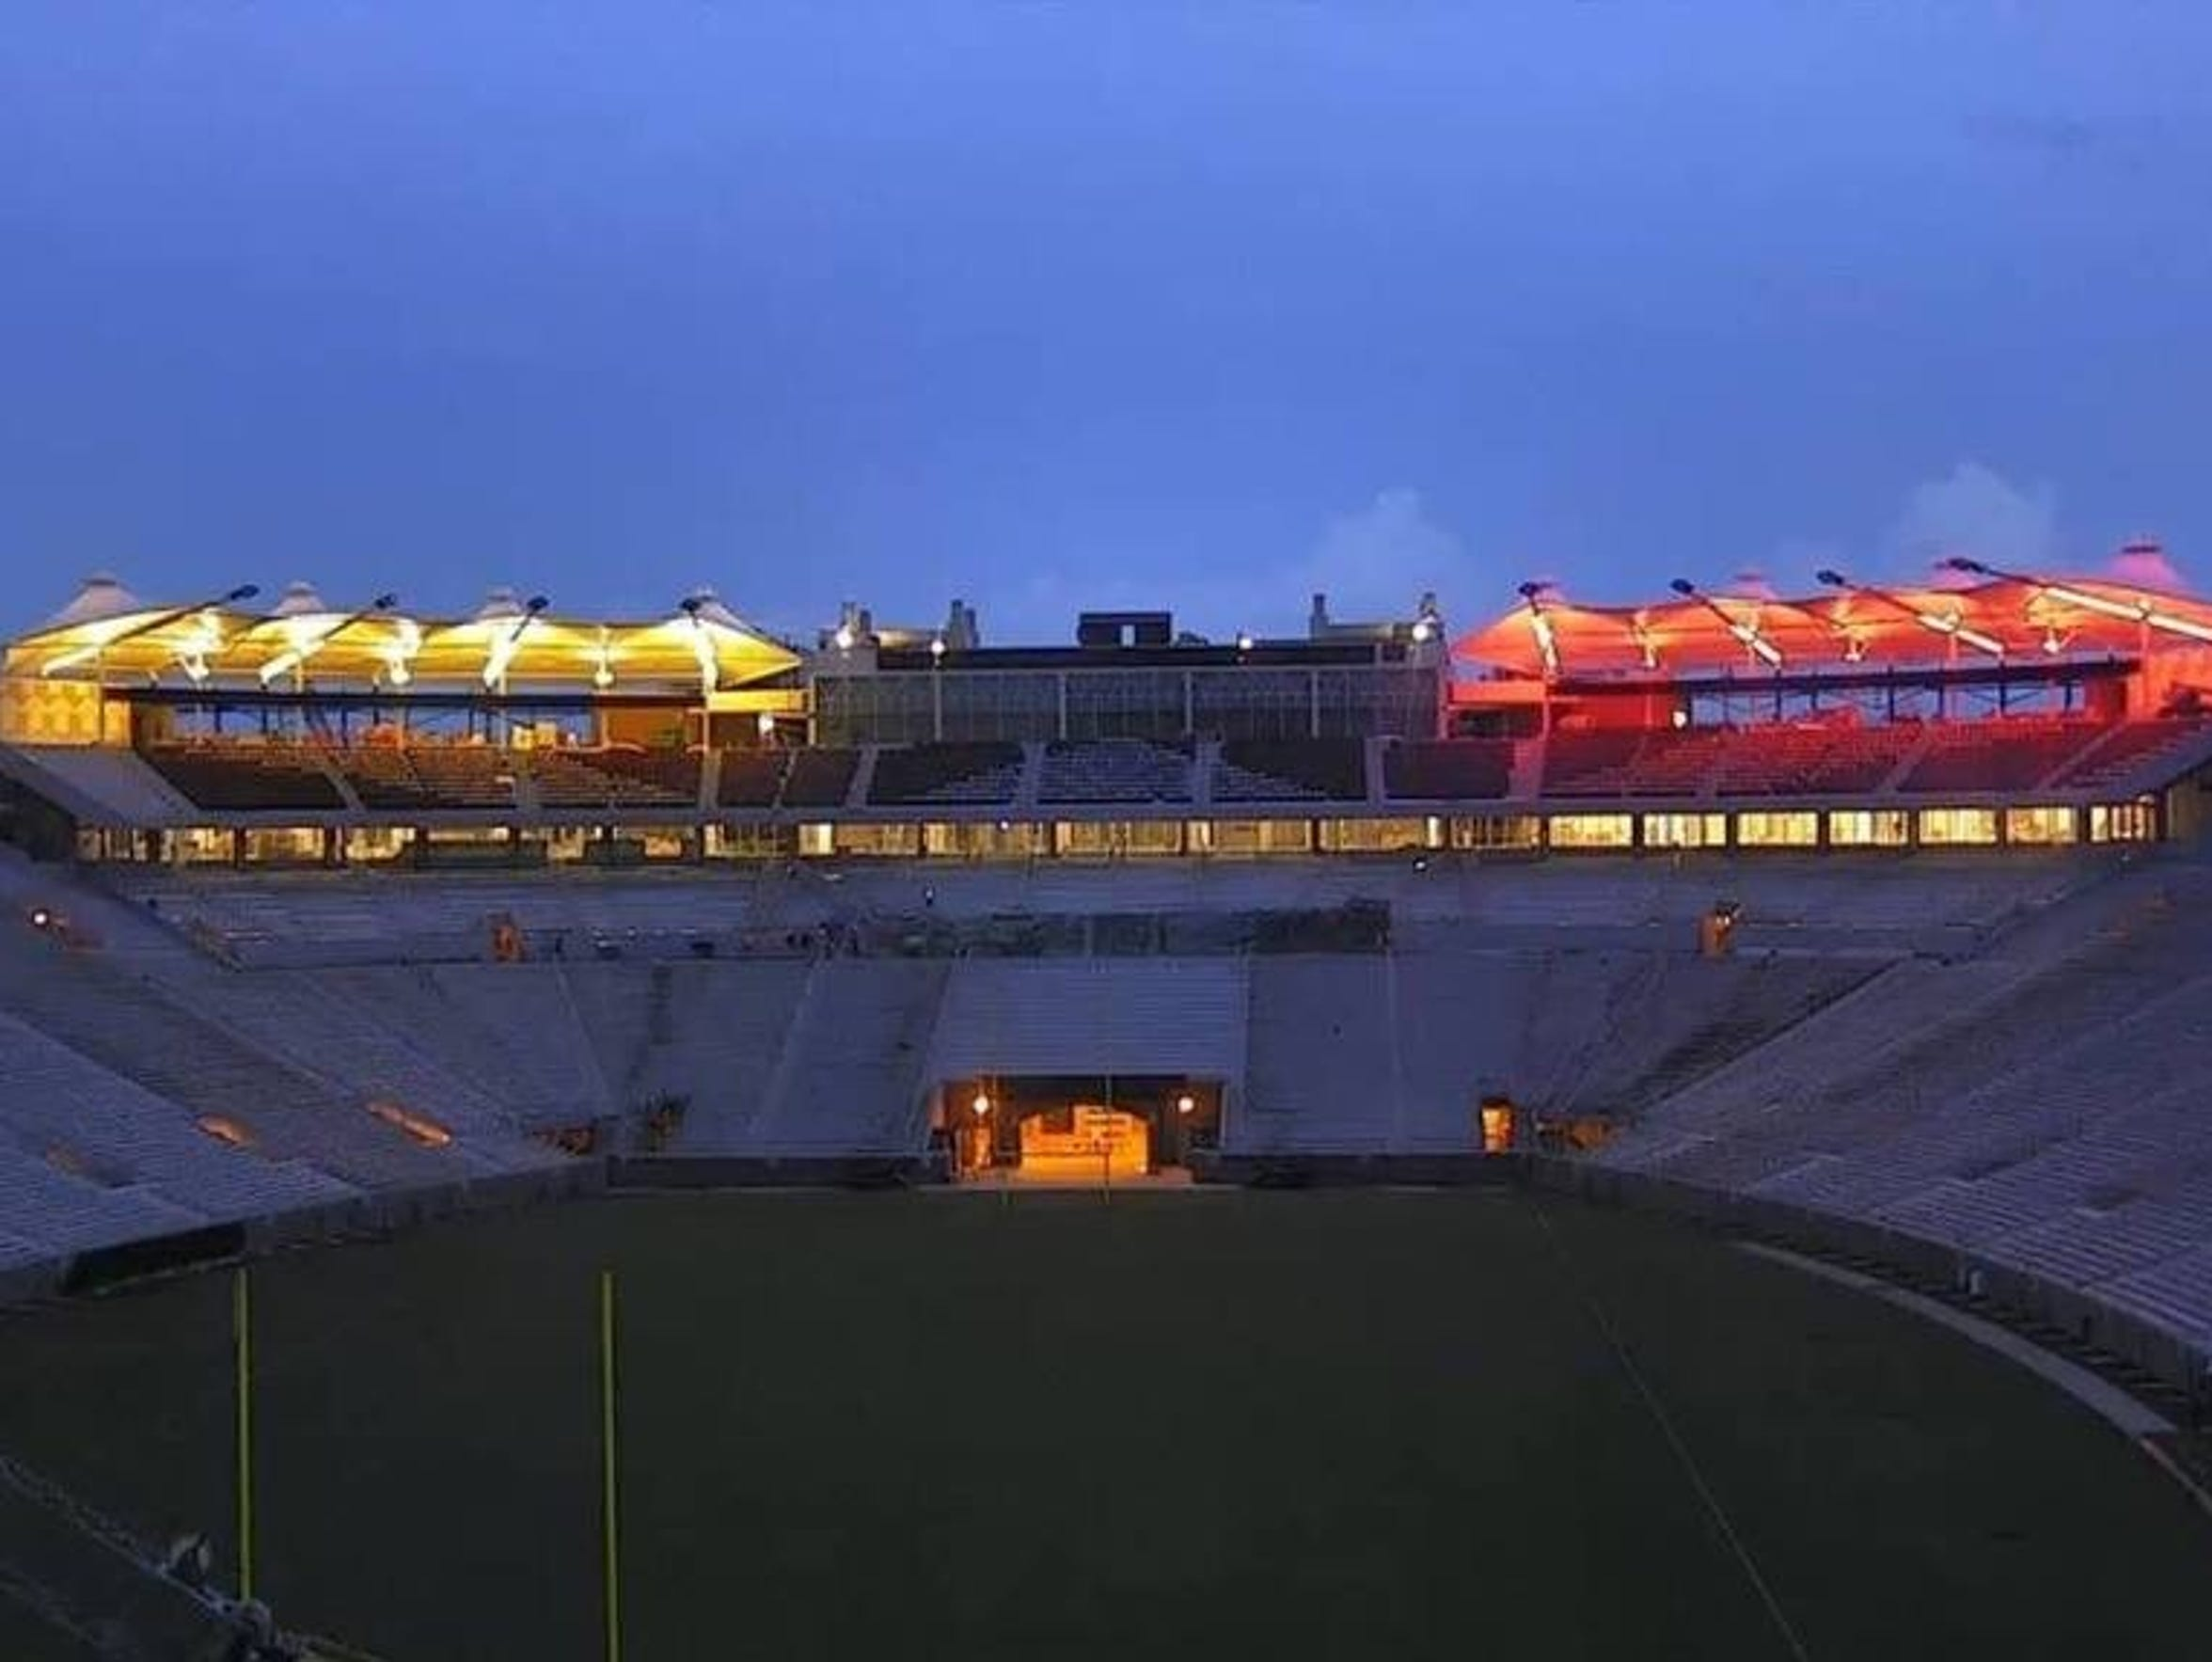 The canopy atop Champions Club seating in Doak Campbell